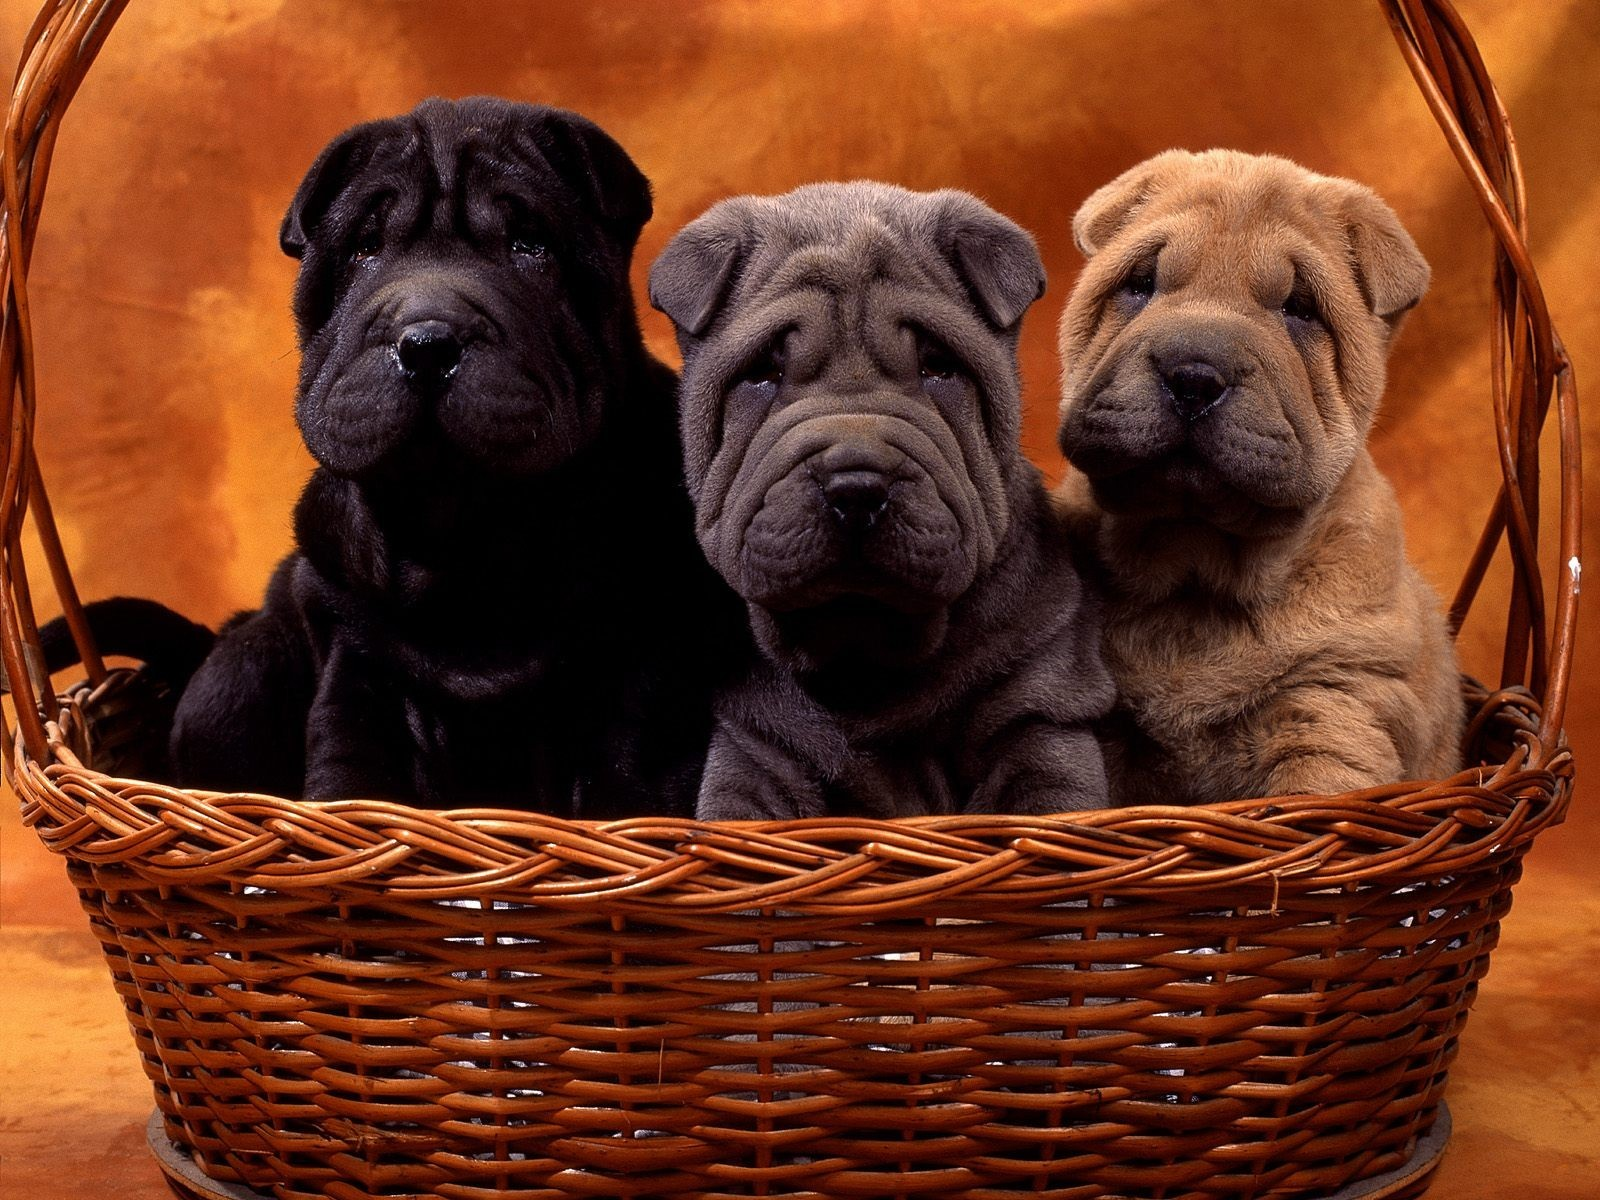 Animals Dogs Puppies baskets HD Wallpaper